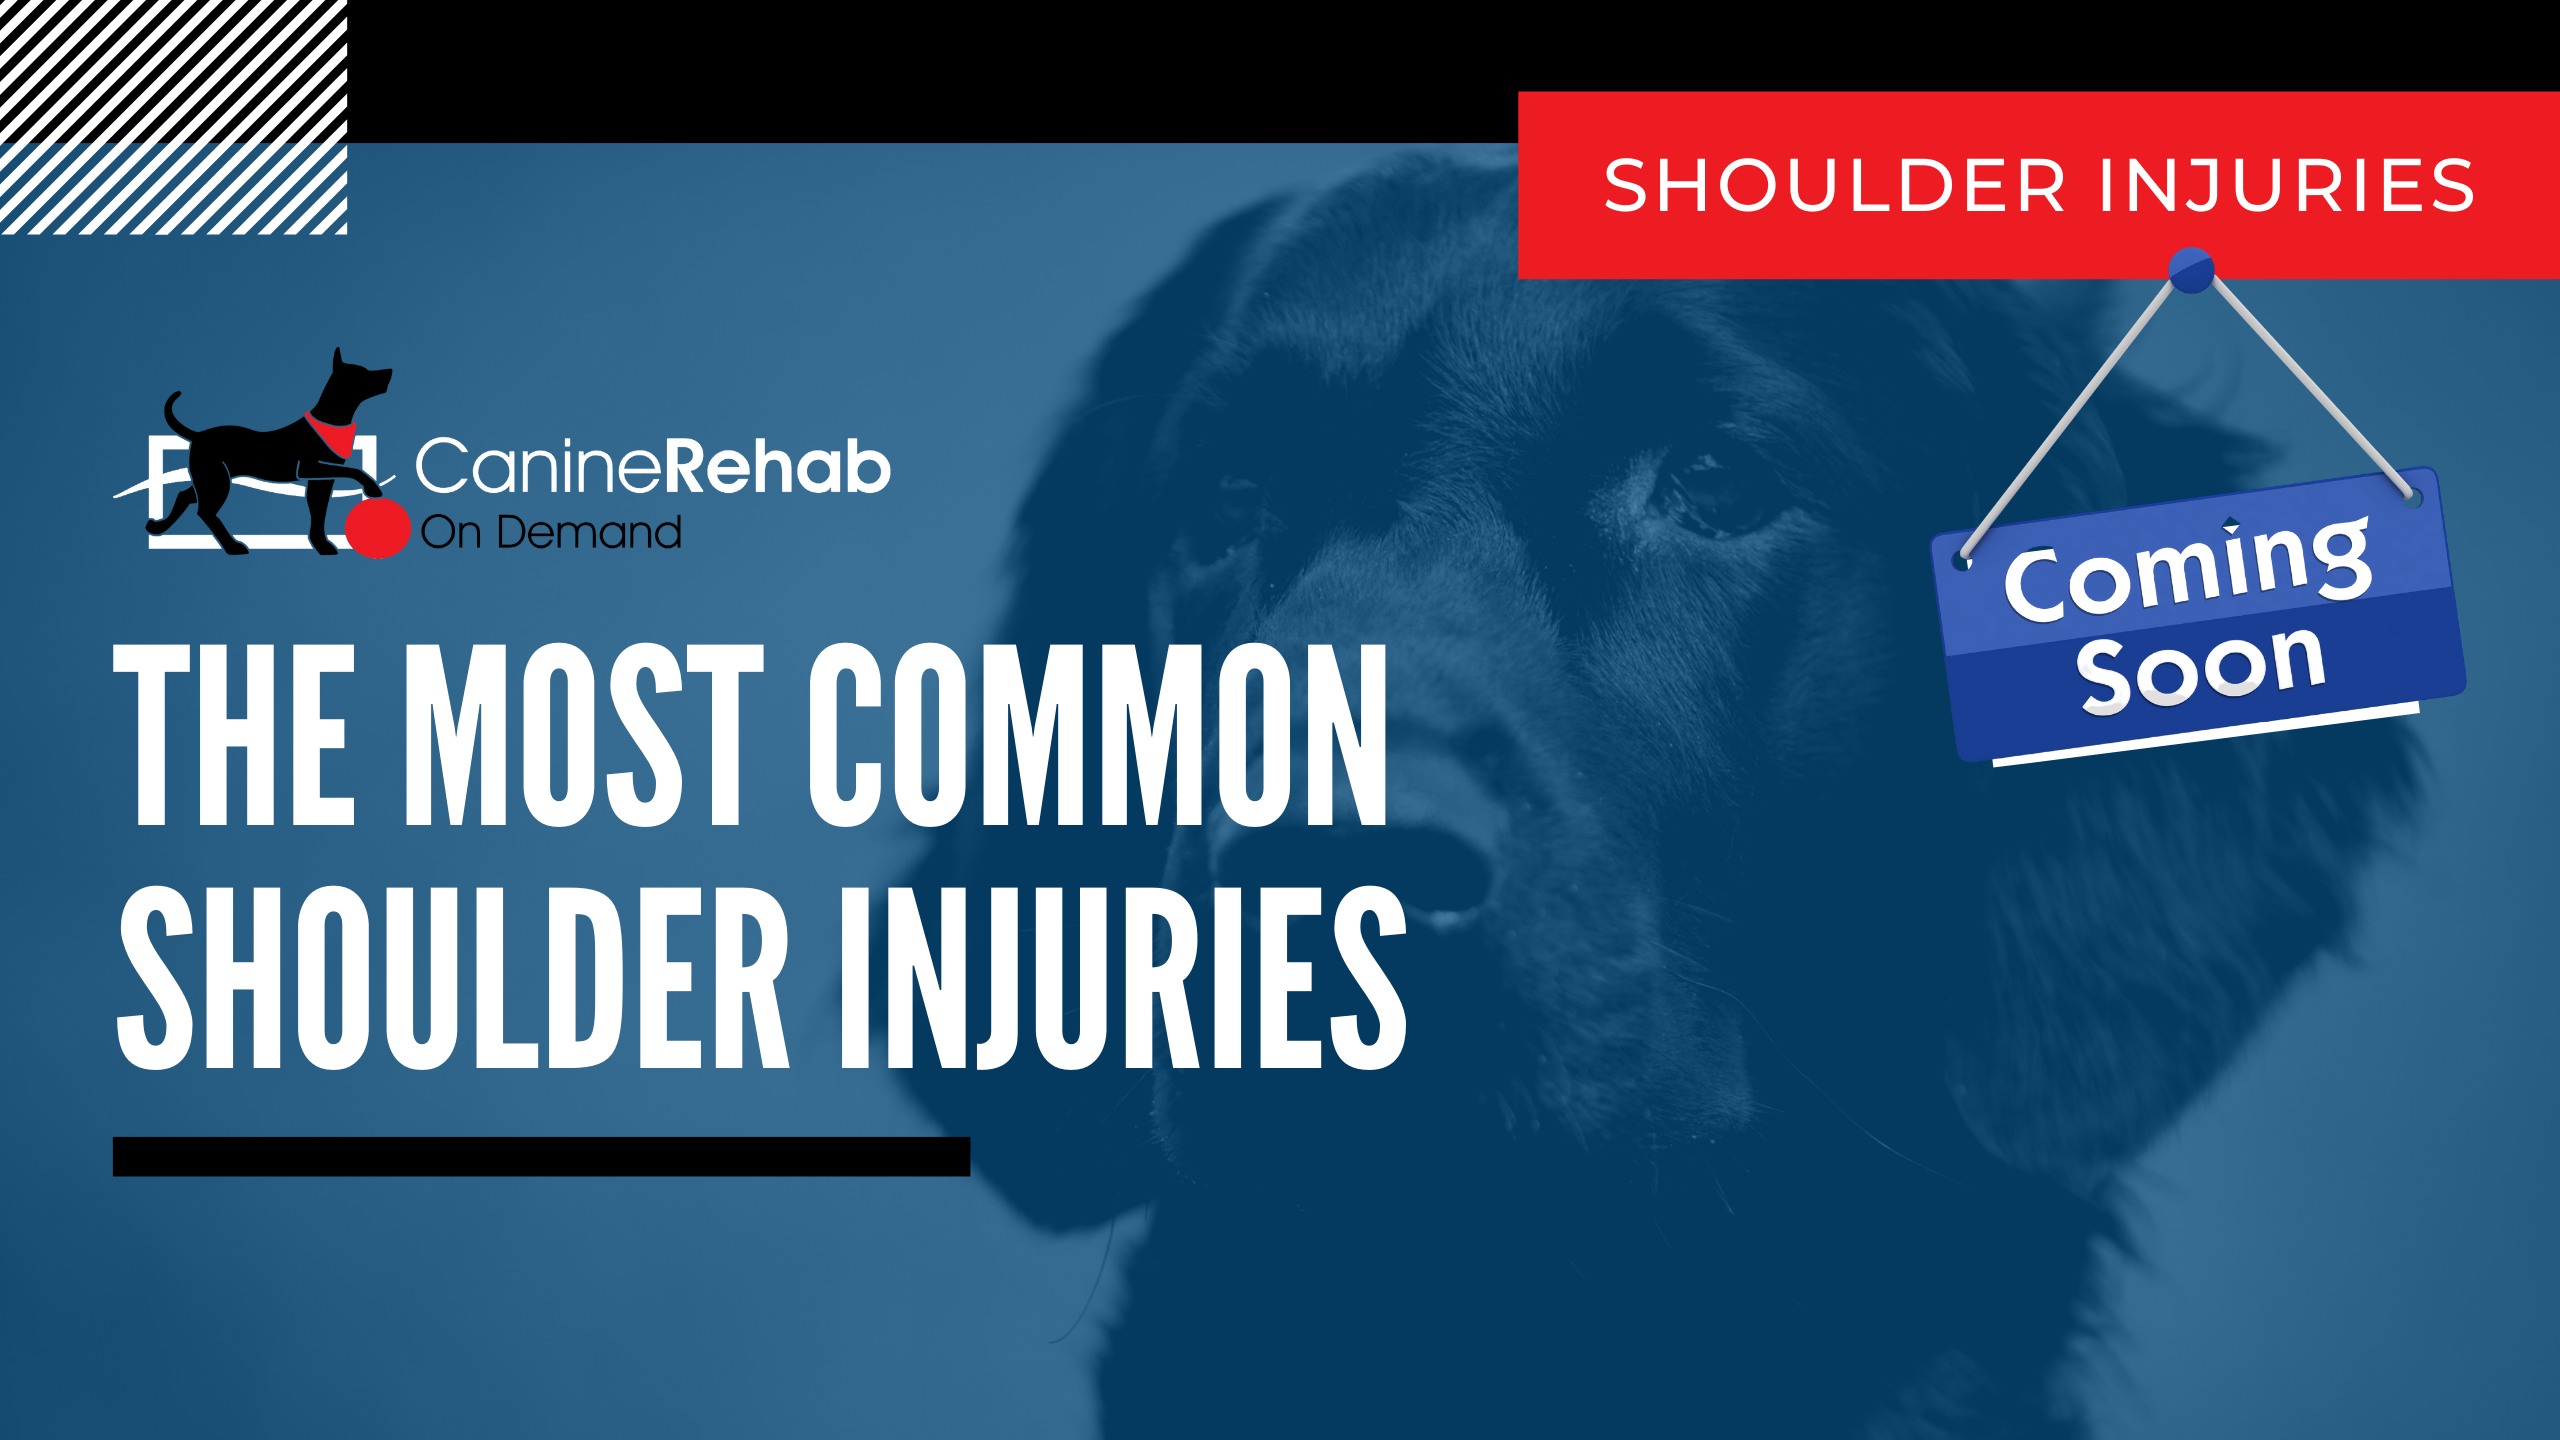 Most Common Shoulder Injuries Coming Soon